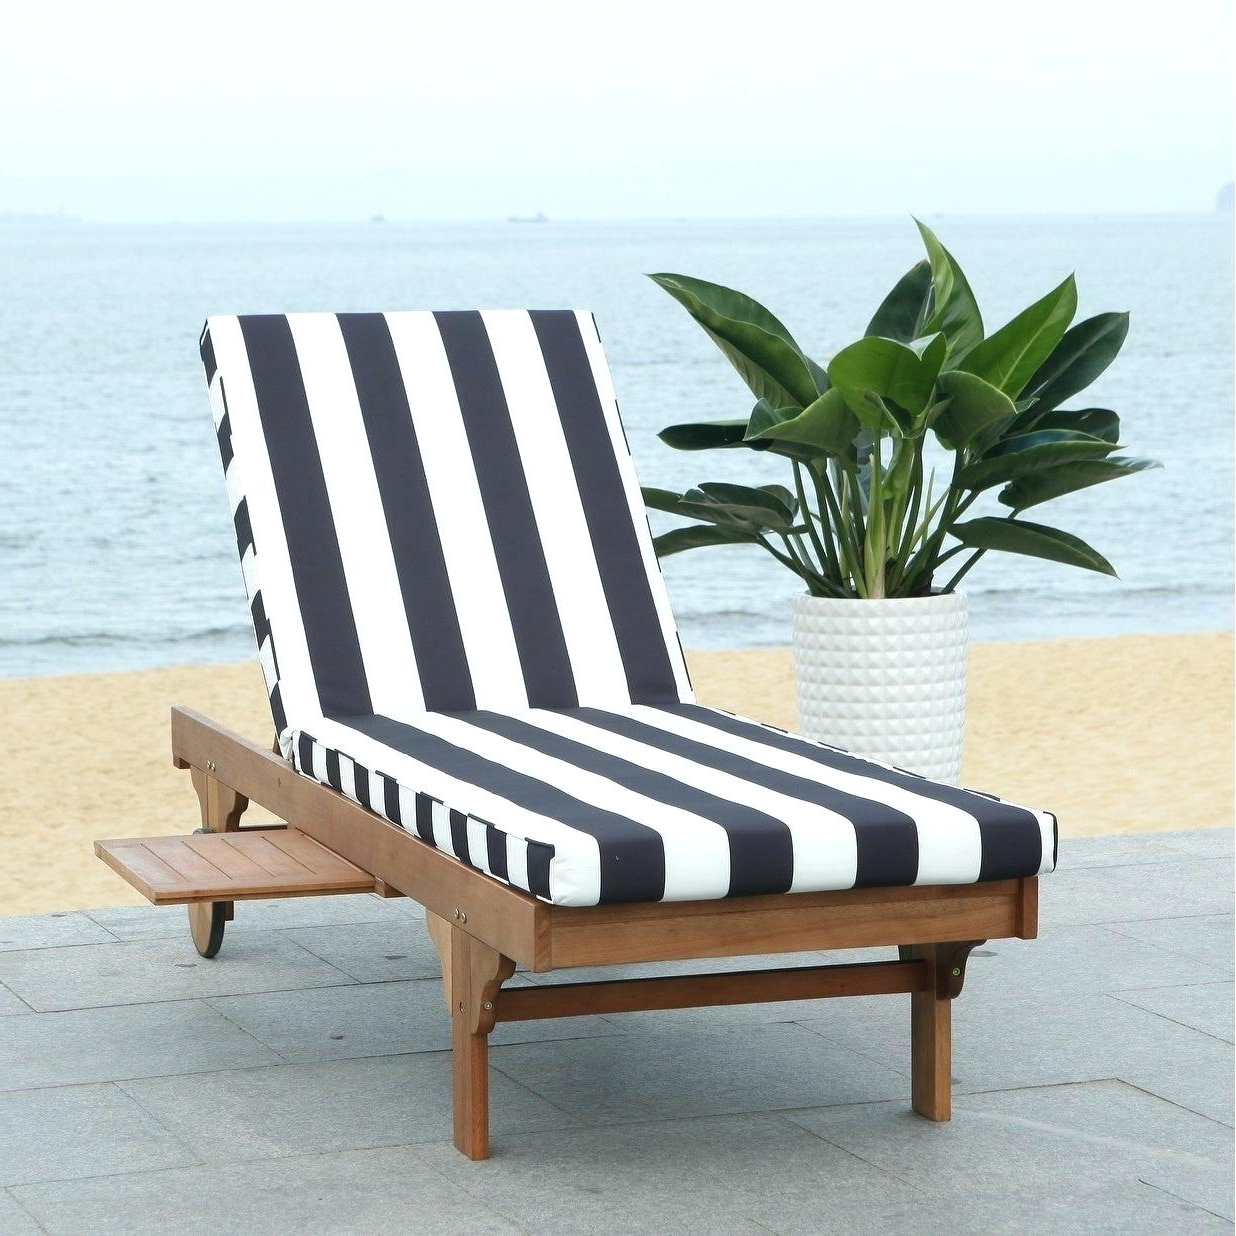 Current Floral Blossom Chaise Lounge Chairs With Cushion With White Chaise Lounge Chair – Glorygame (View 25 of 25)